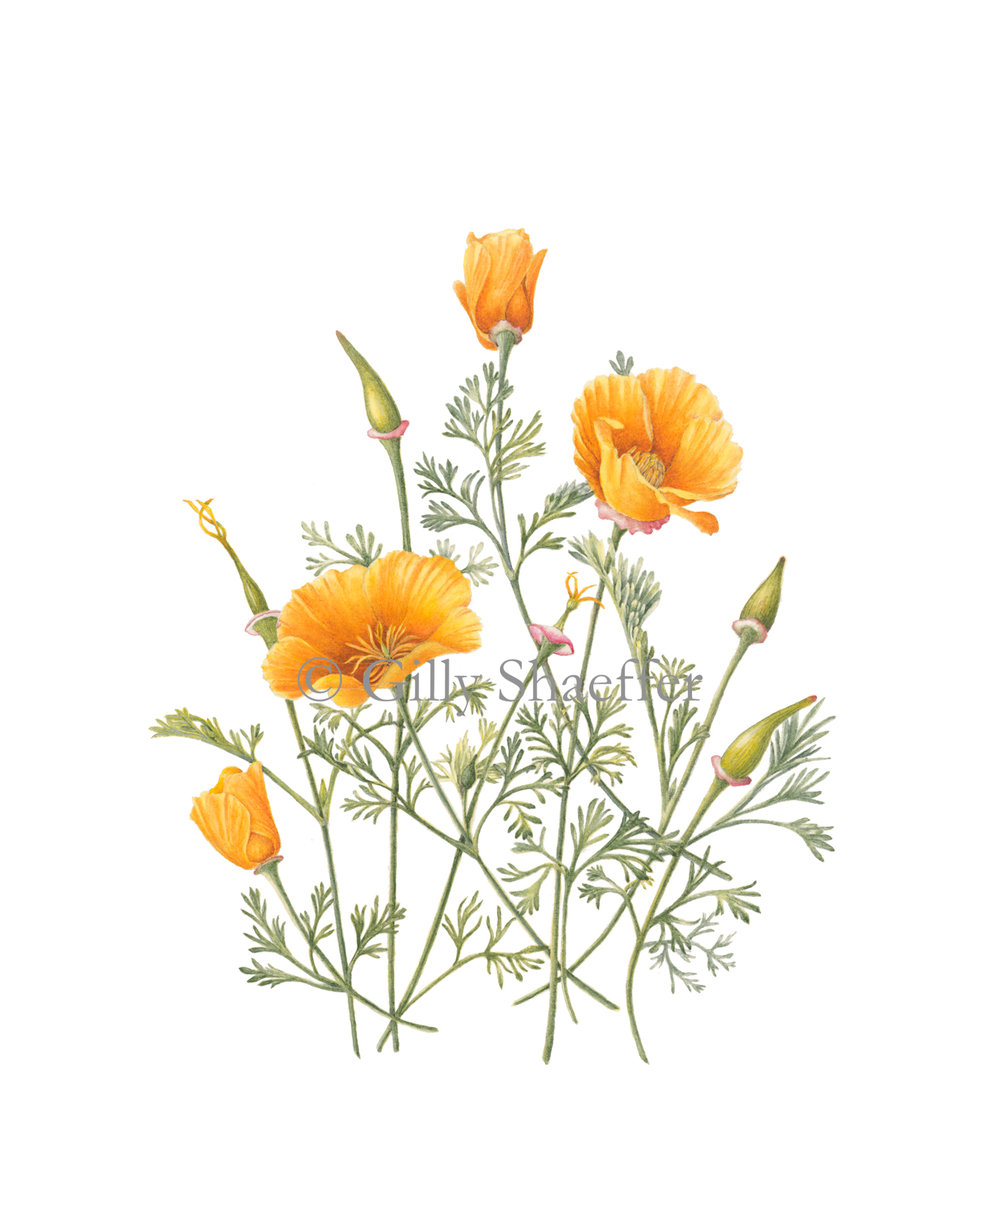 california-poppy-2 copy.jpg